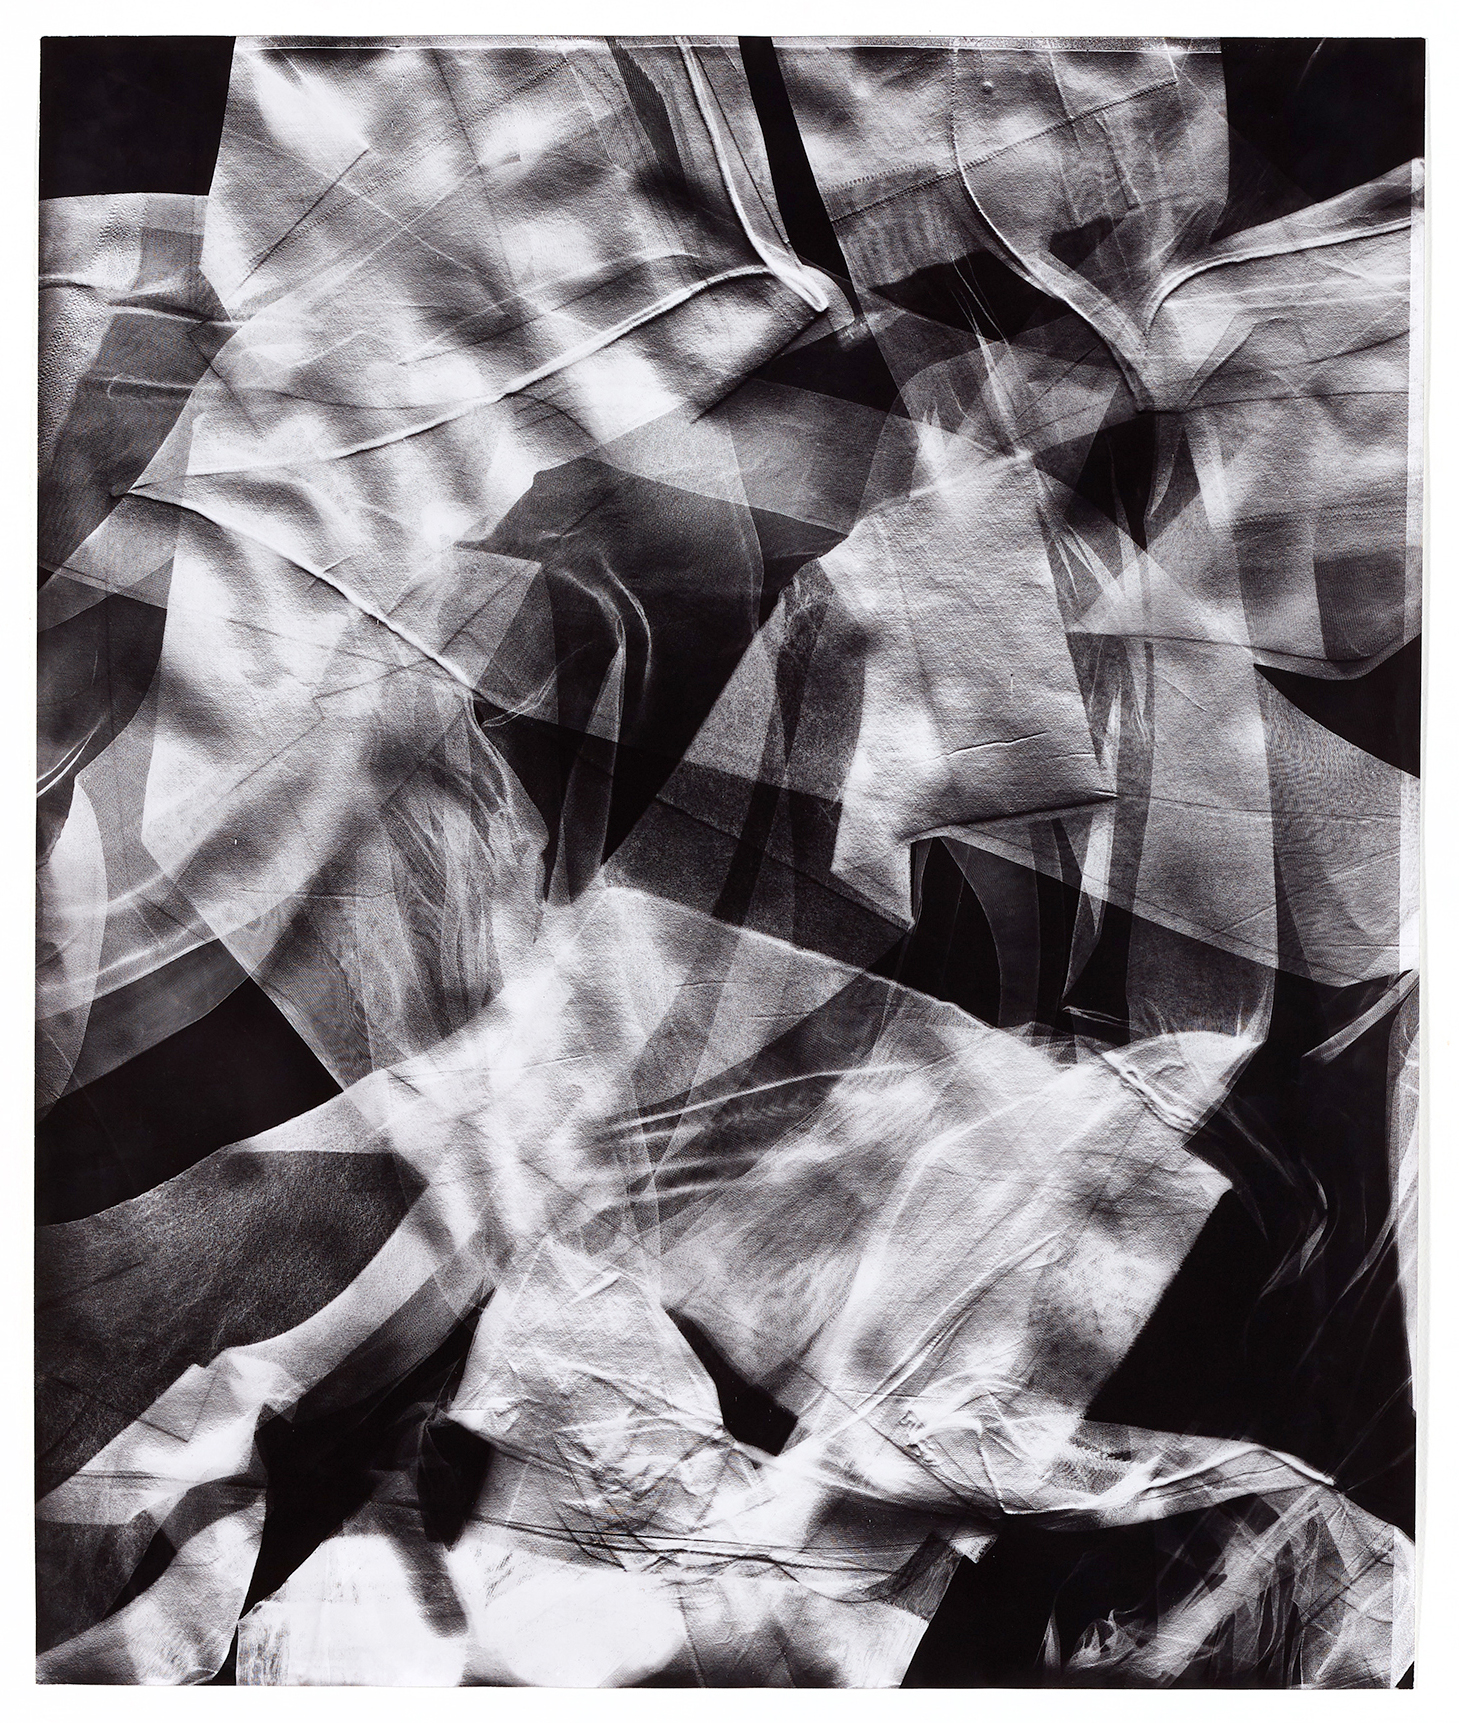 KLEA MCKENNA  Skins (2) , 2018 Photographic Relief. Unique Photogram on gelatin silver fiber paper. Selenium toned. Impression of Nylon stockings. United States. 1950s – 1960s. 24 x 20 inches